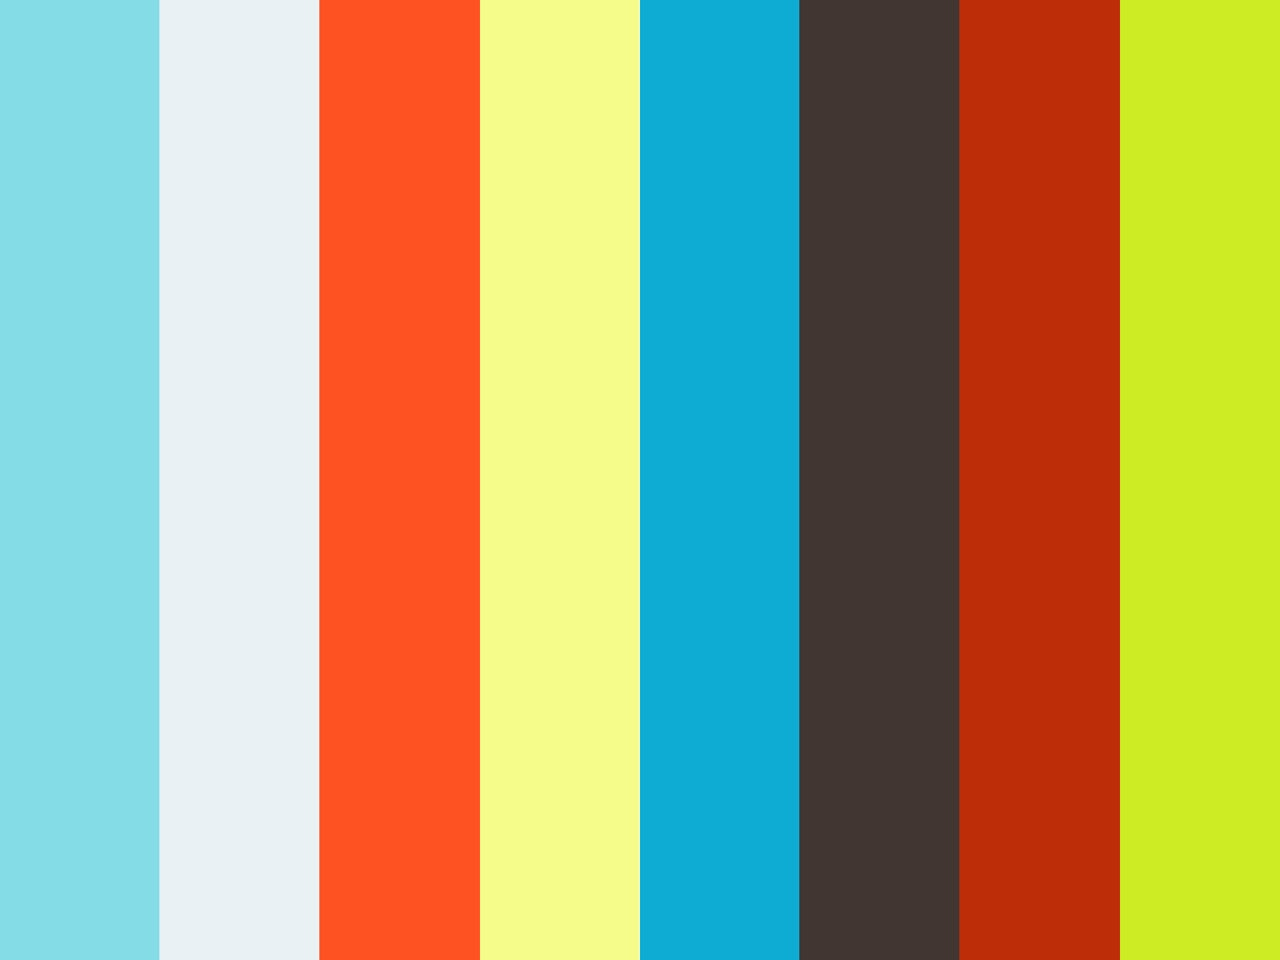 Grand Canyon at 30,000 feet